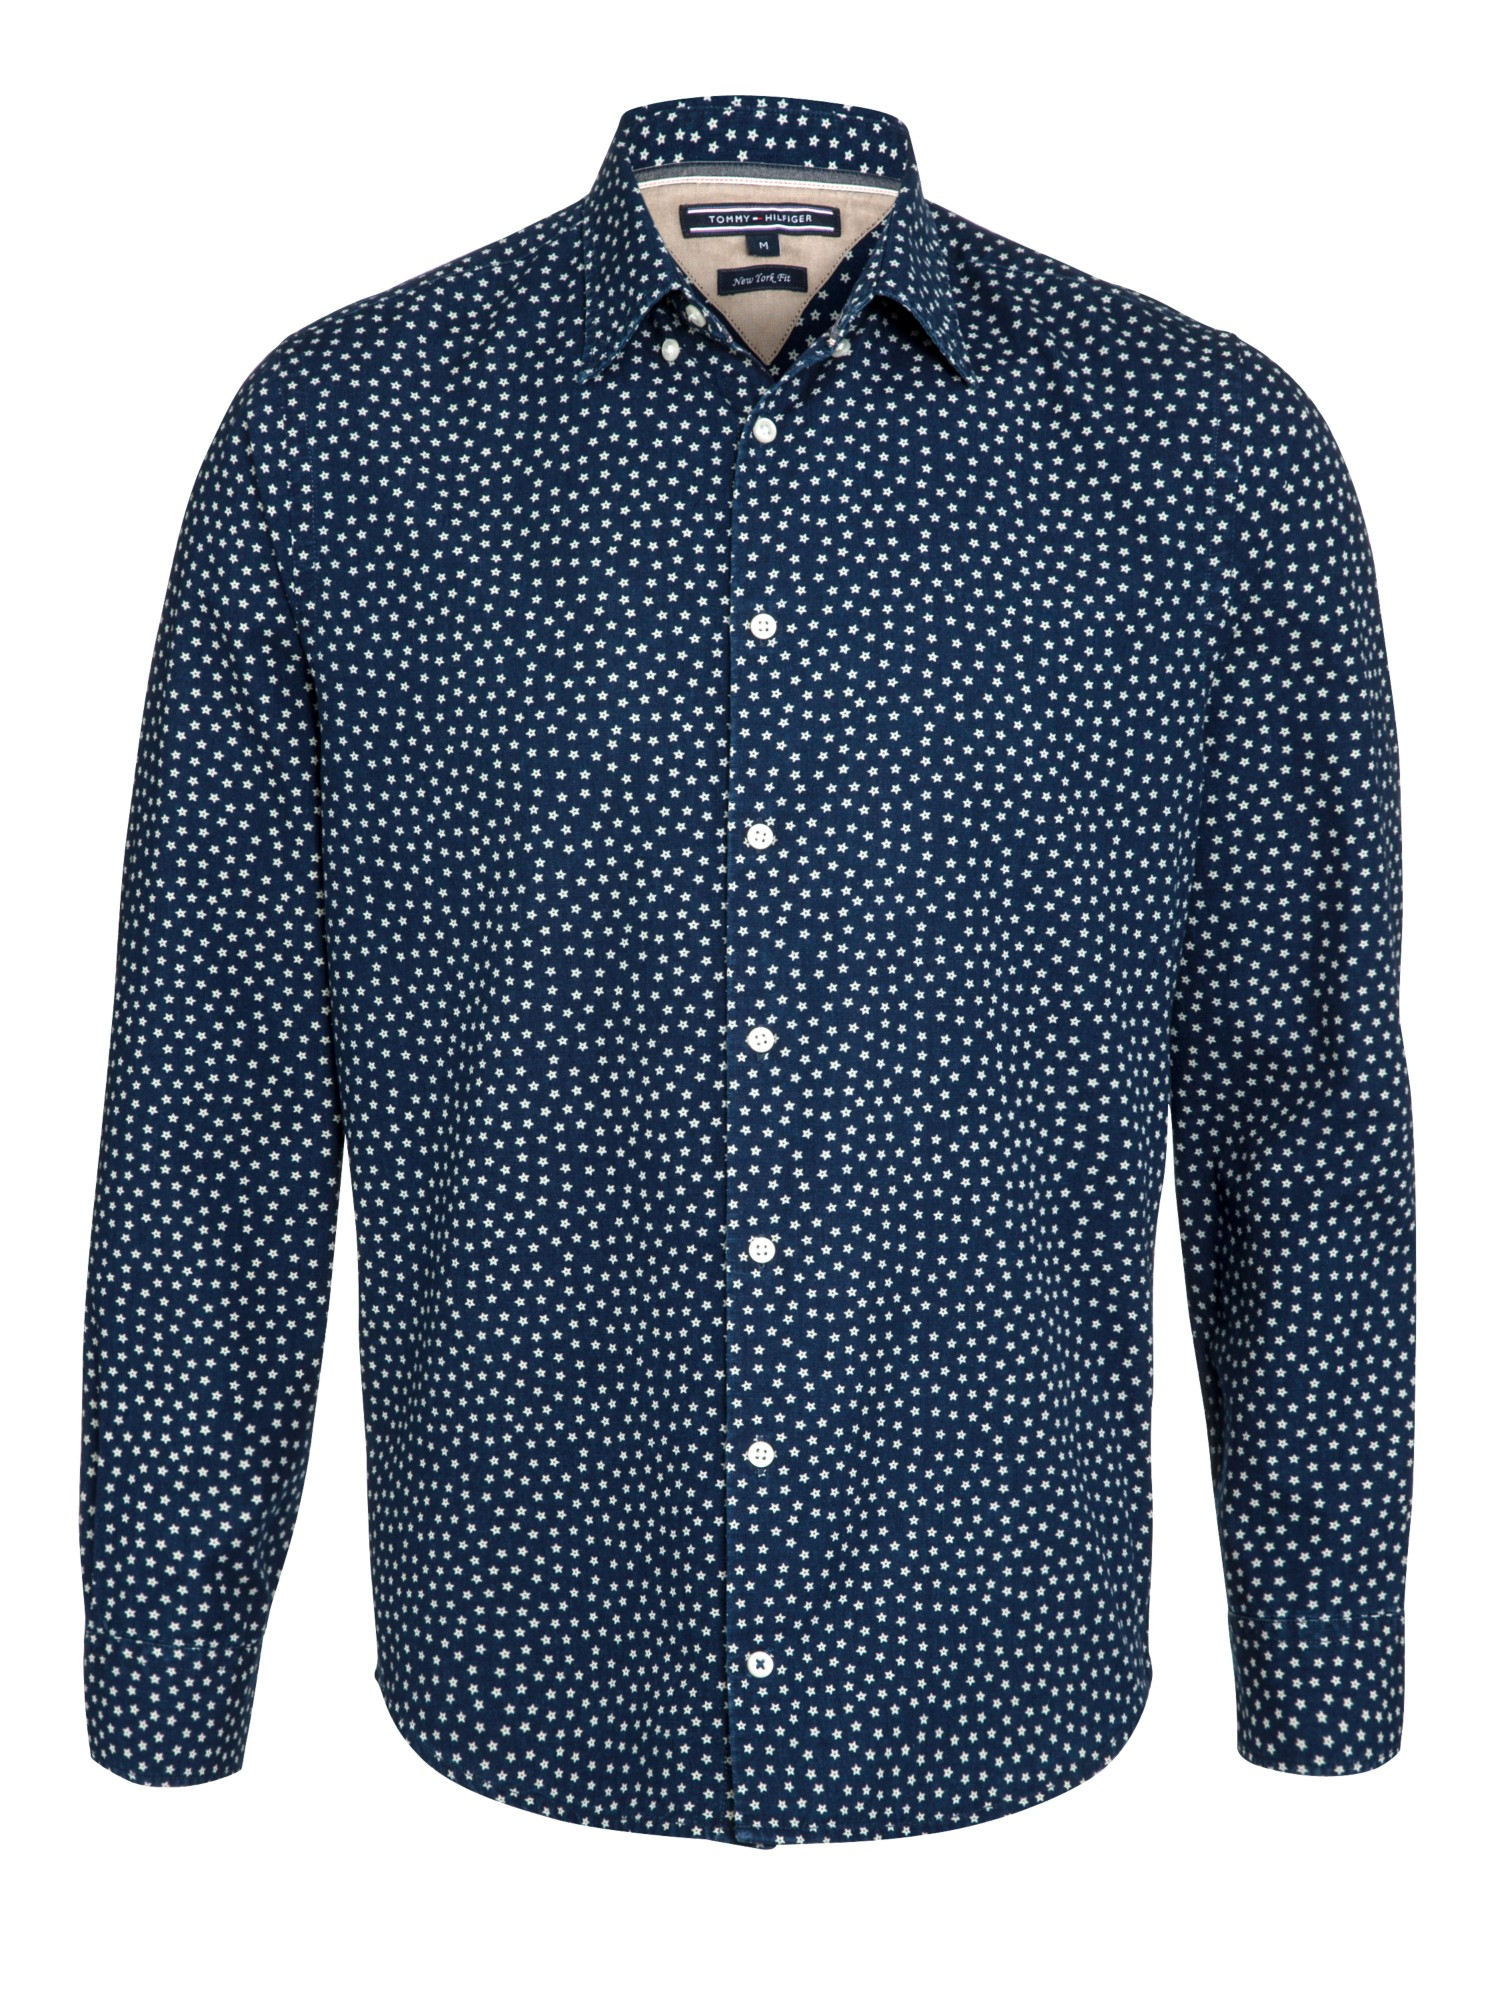 Tommy hilfiger shirts india online shopping